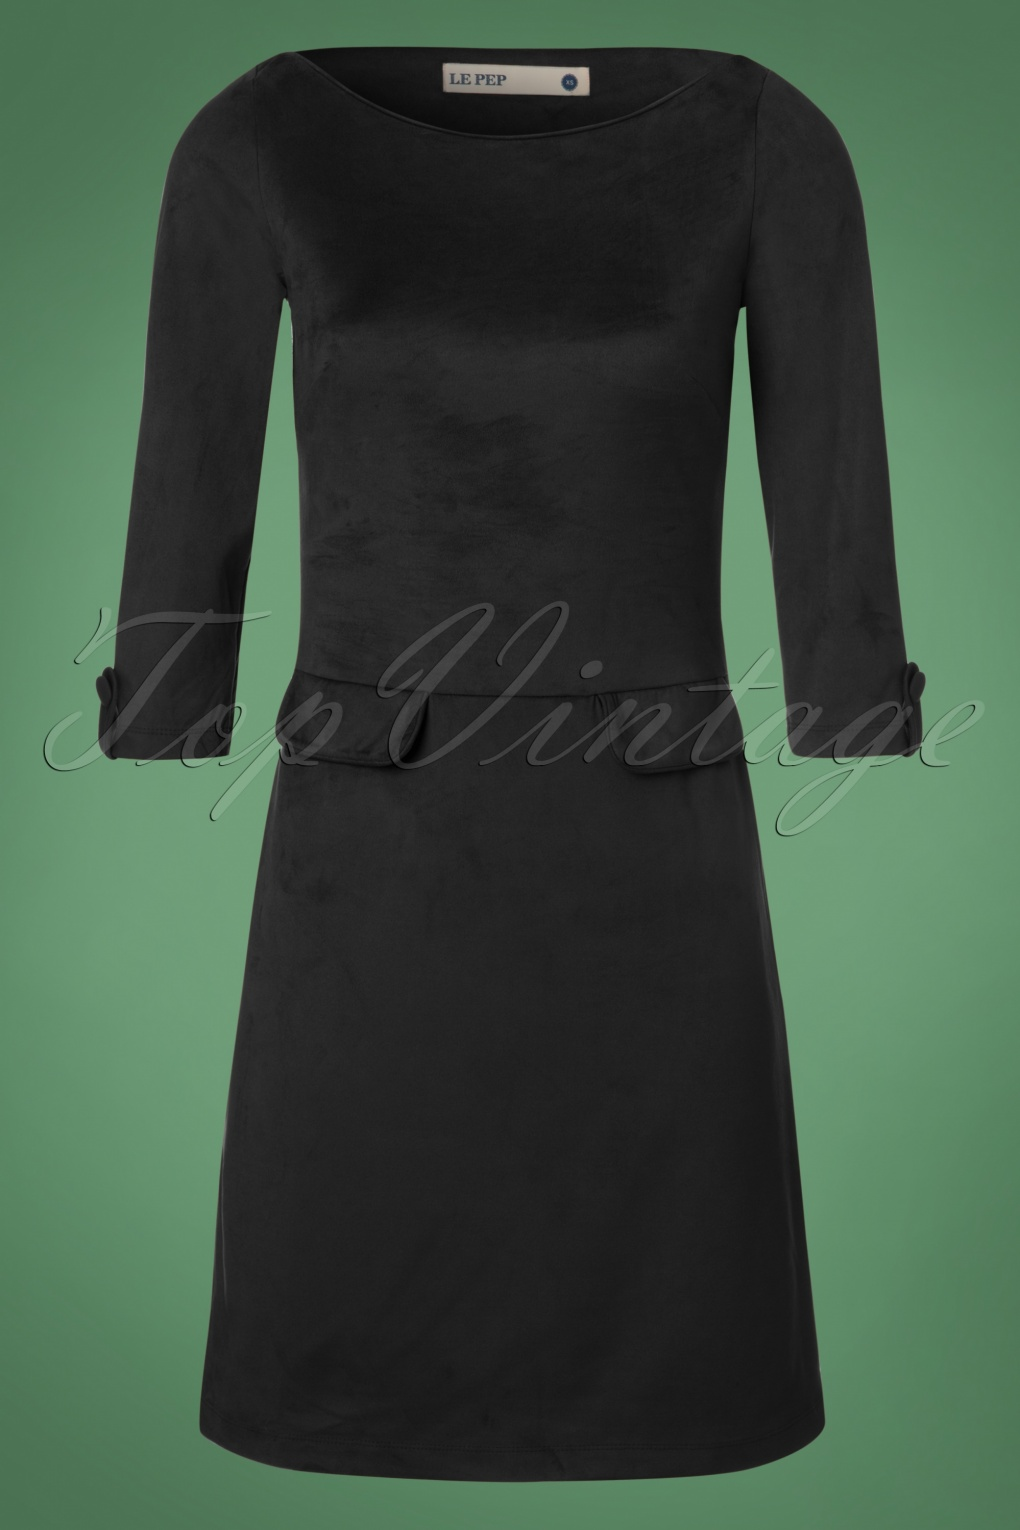 1960s Inspired Fashion: Recreate the Look 60s Dallin Suedine Dress in Black £97.03 AT vintagedancer.com